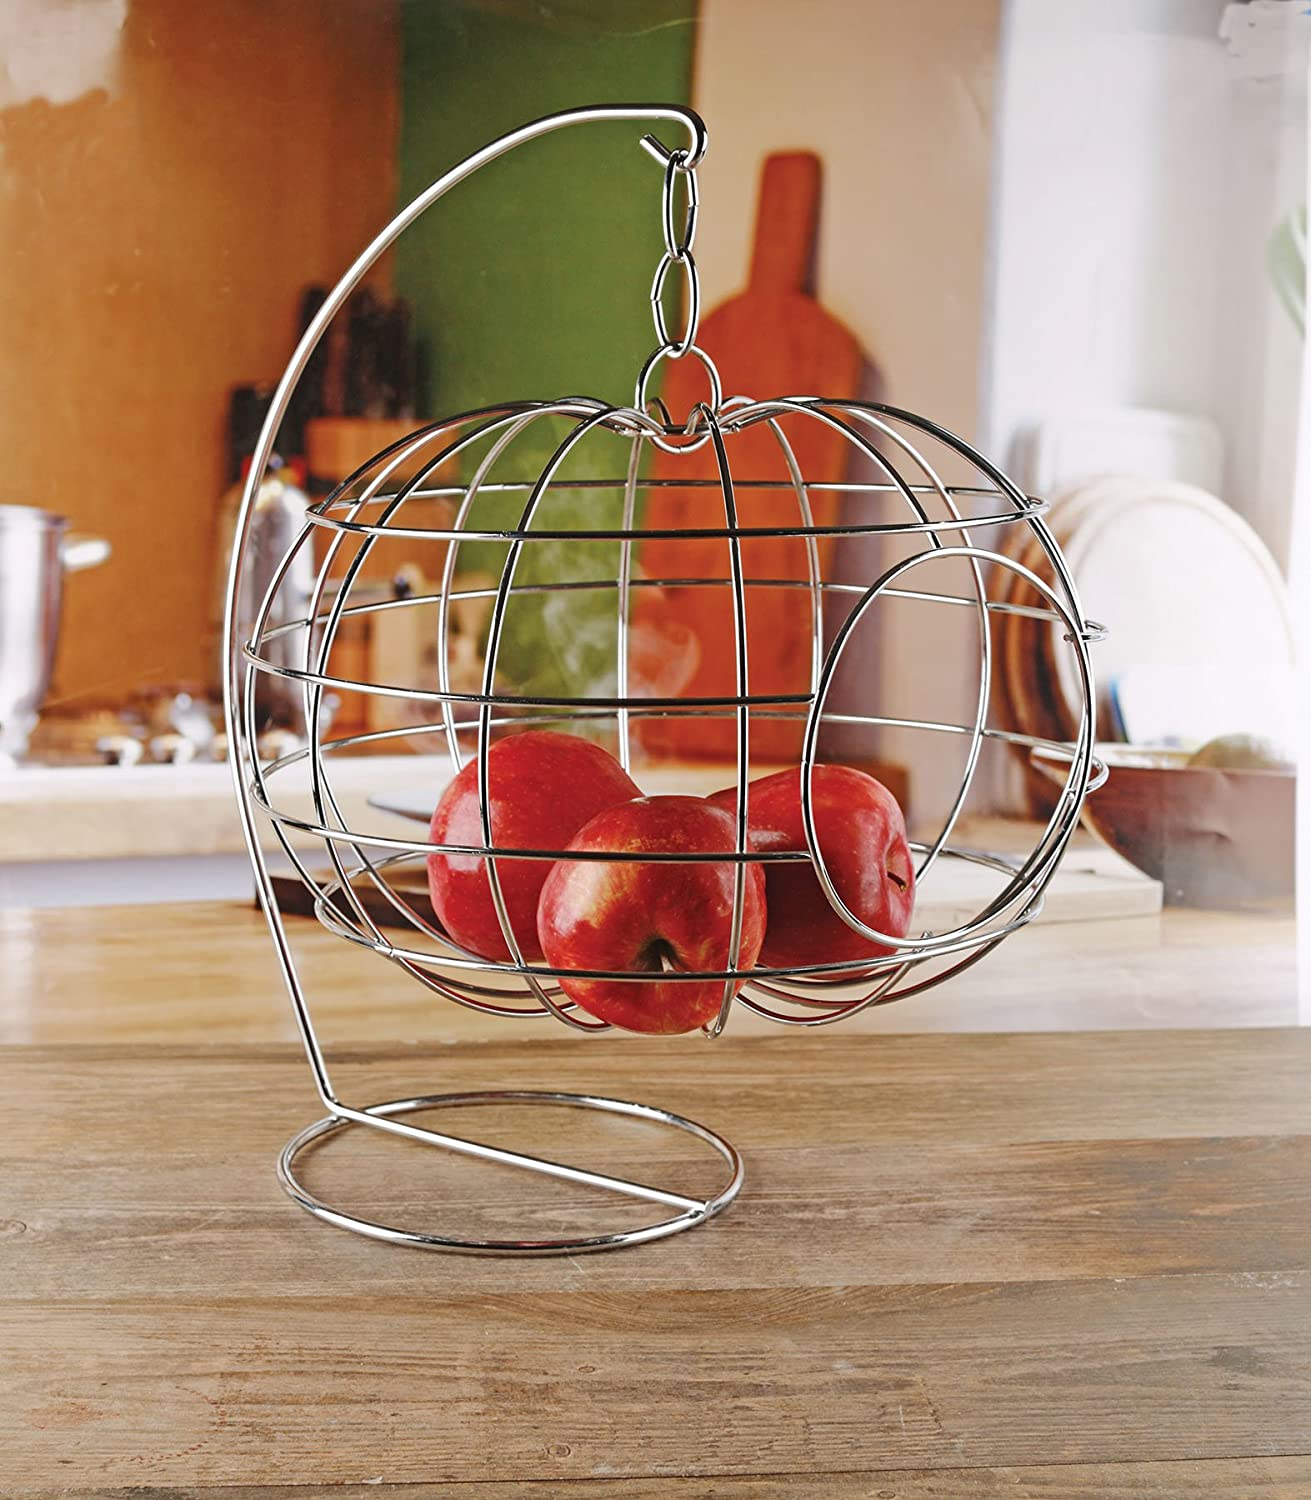 "Circleware Cage Apple Shaped Hanging Fruit Basket Holder, Home and Kitchen Utensils Countertop Organizer Display for Produce, Vegetables and Snacks, 12.99"" X 12.99"" X 16.14"", Silver"